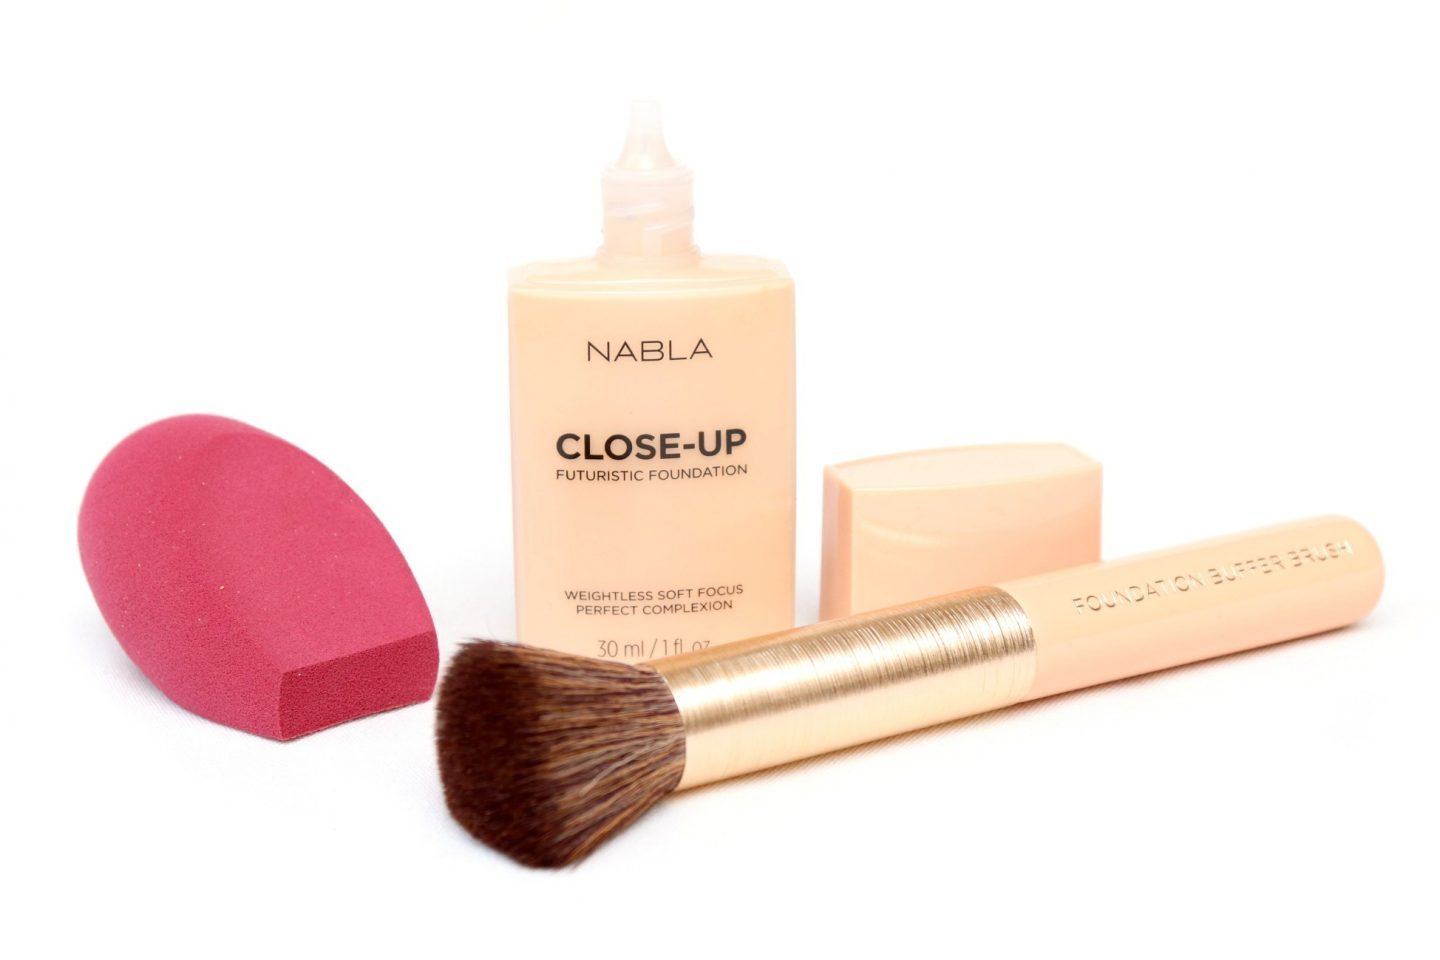 NABLA CLOSE-UP Futuristic Foundation Review